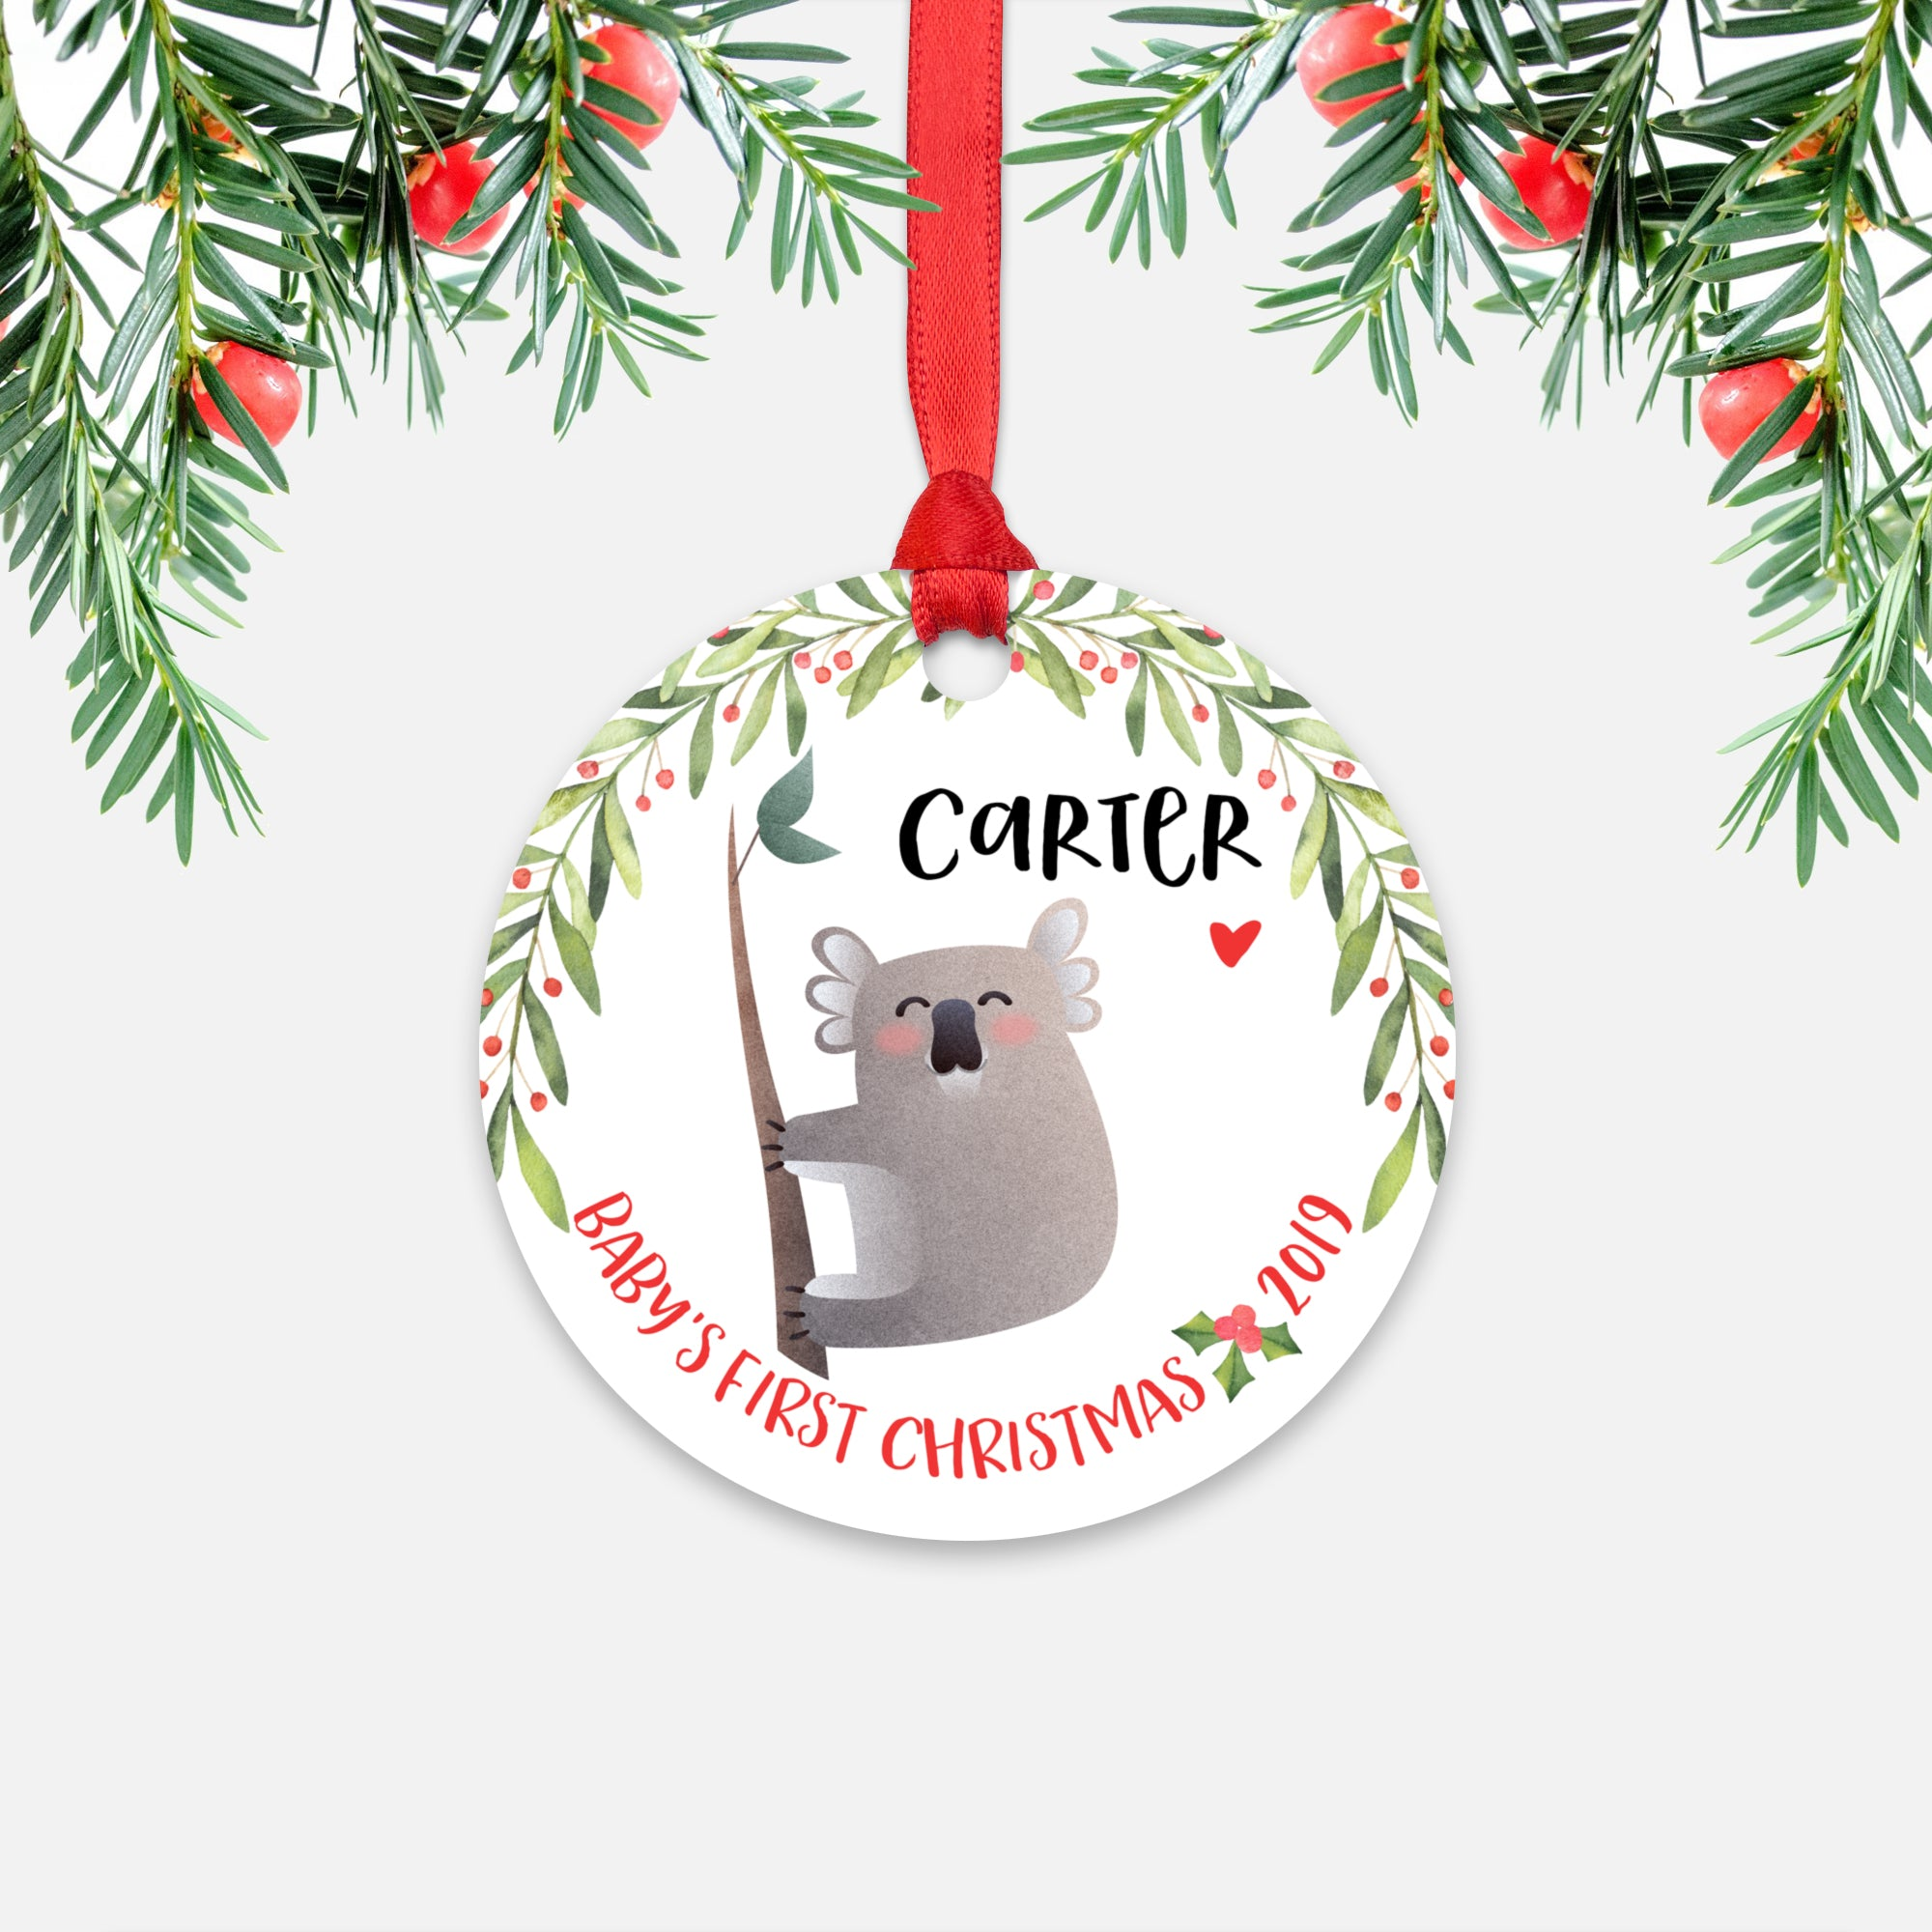 Koala Bear Personalized Baby's First Christmas Ornament for Baby Boy or Baby Girl - Cute Australian Animal Baby 1st Holidays Decoration - Custom Christmas Gift Idea for New Parents - Round Aluminum - by Happy Cat Prints